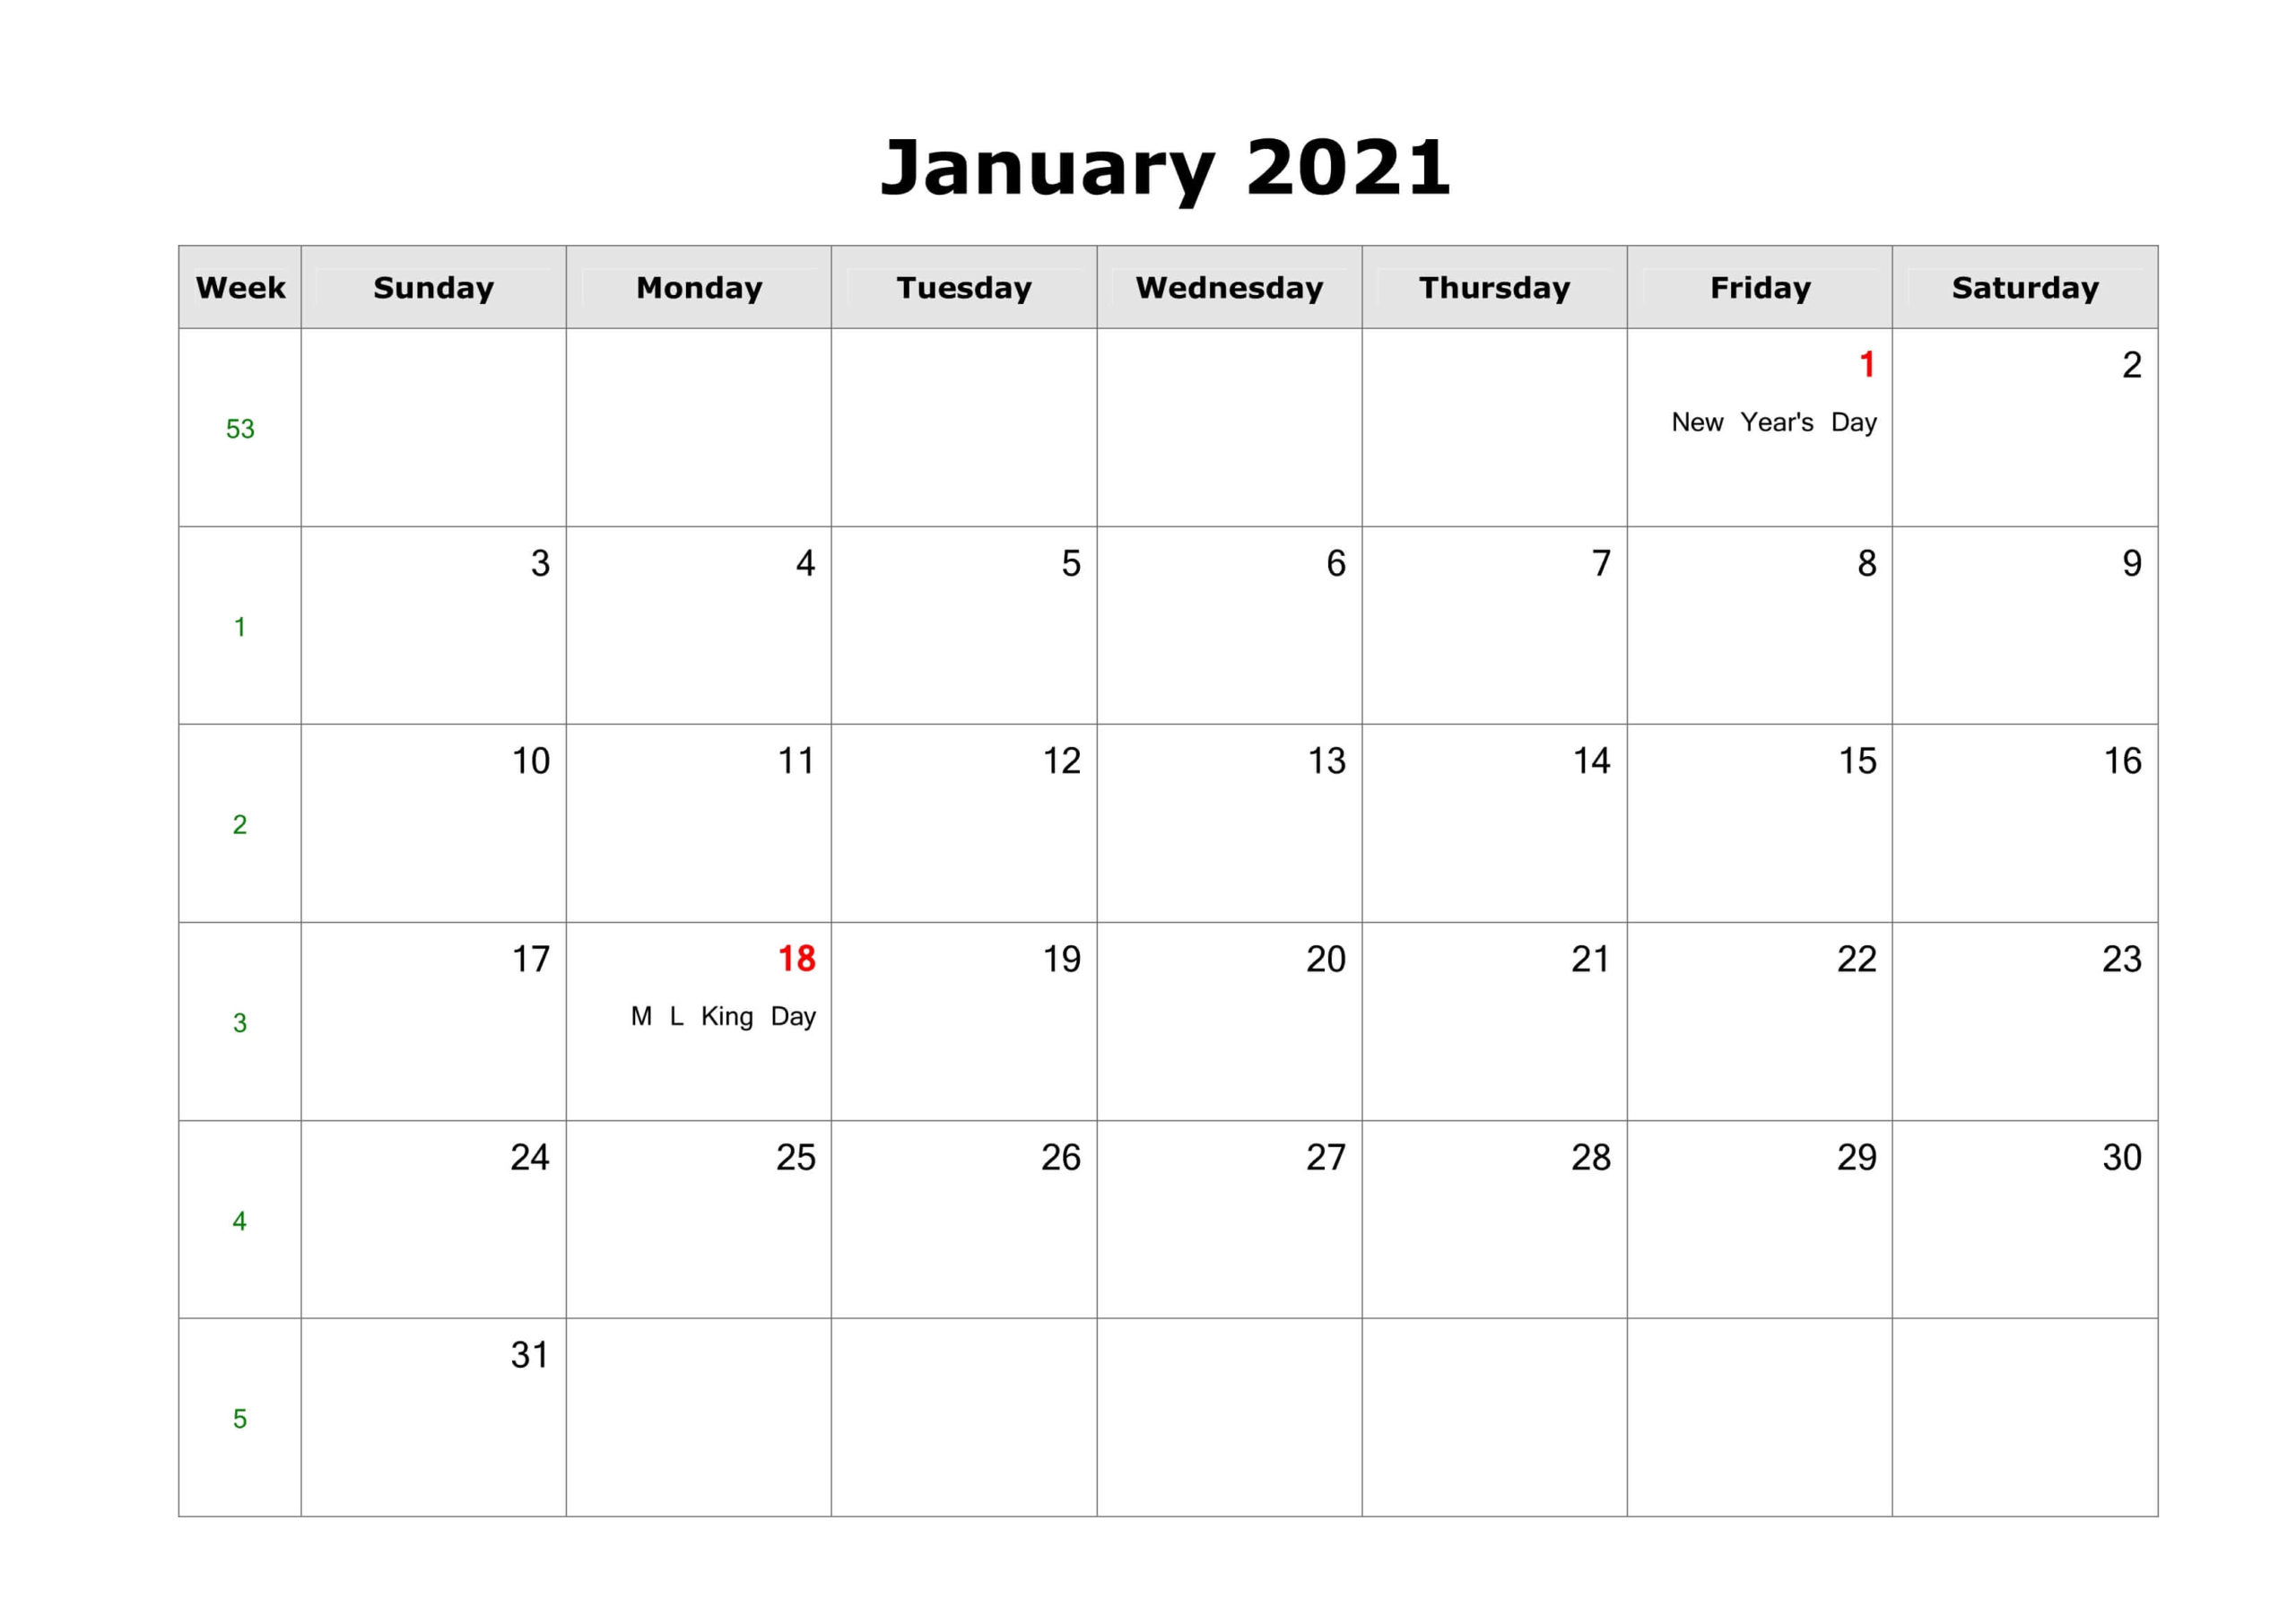 Holidays Calendar January 2021